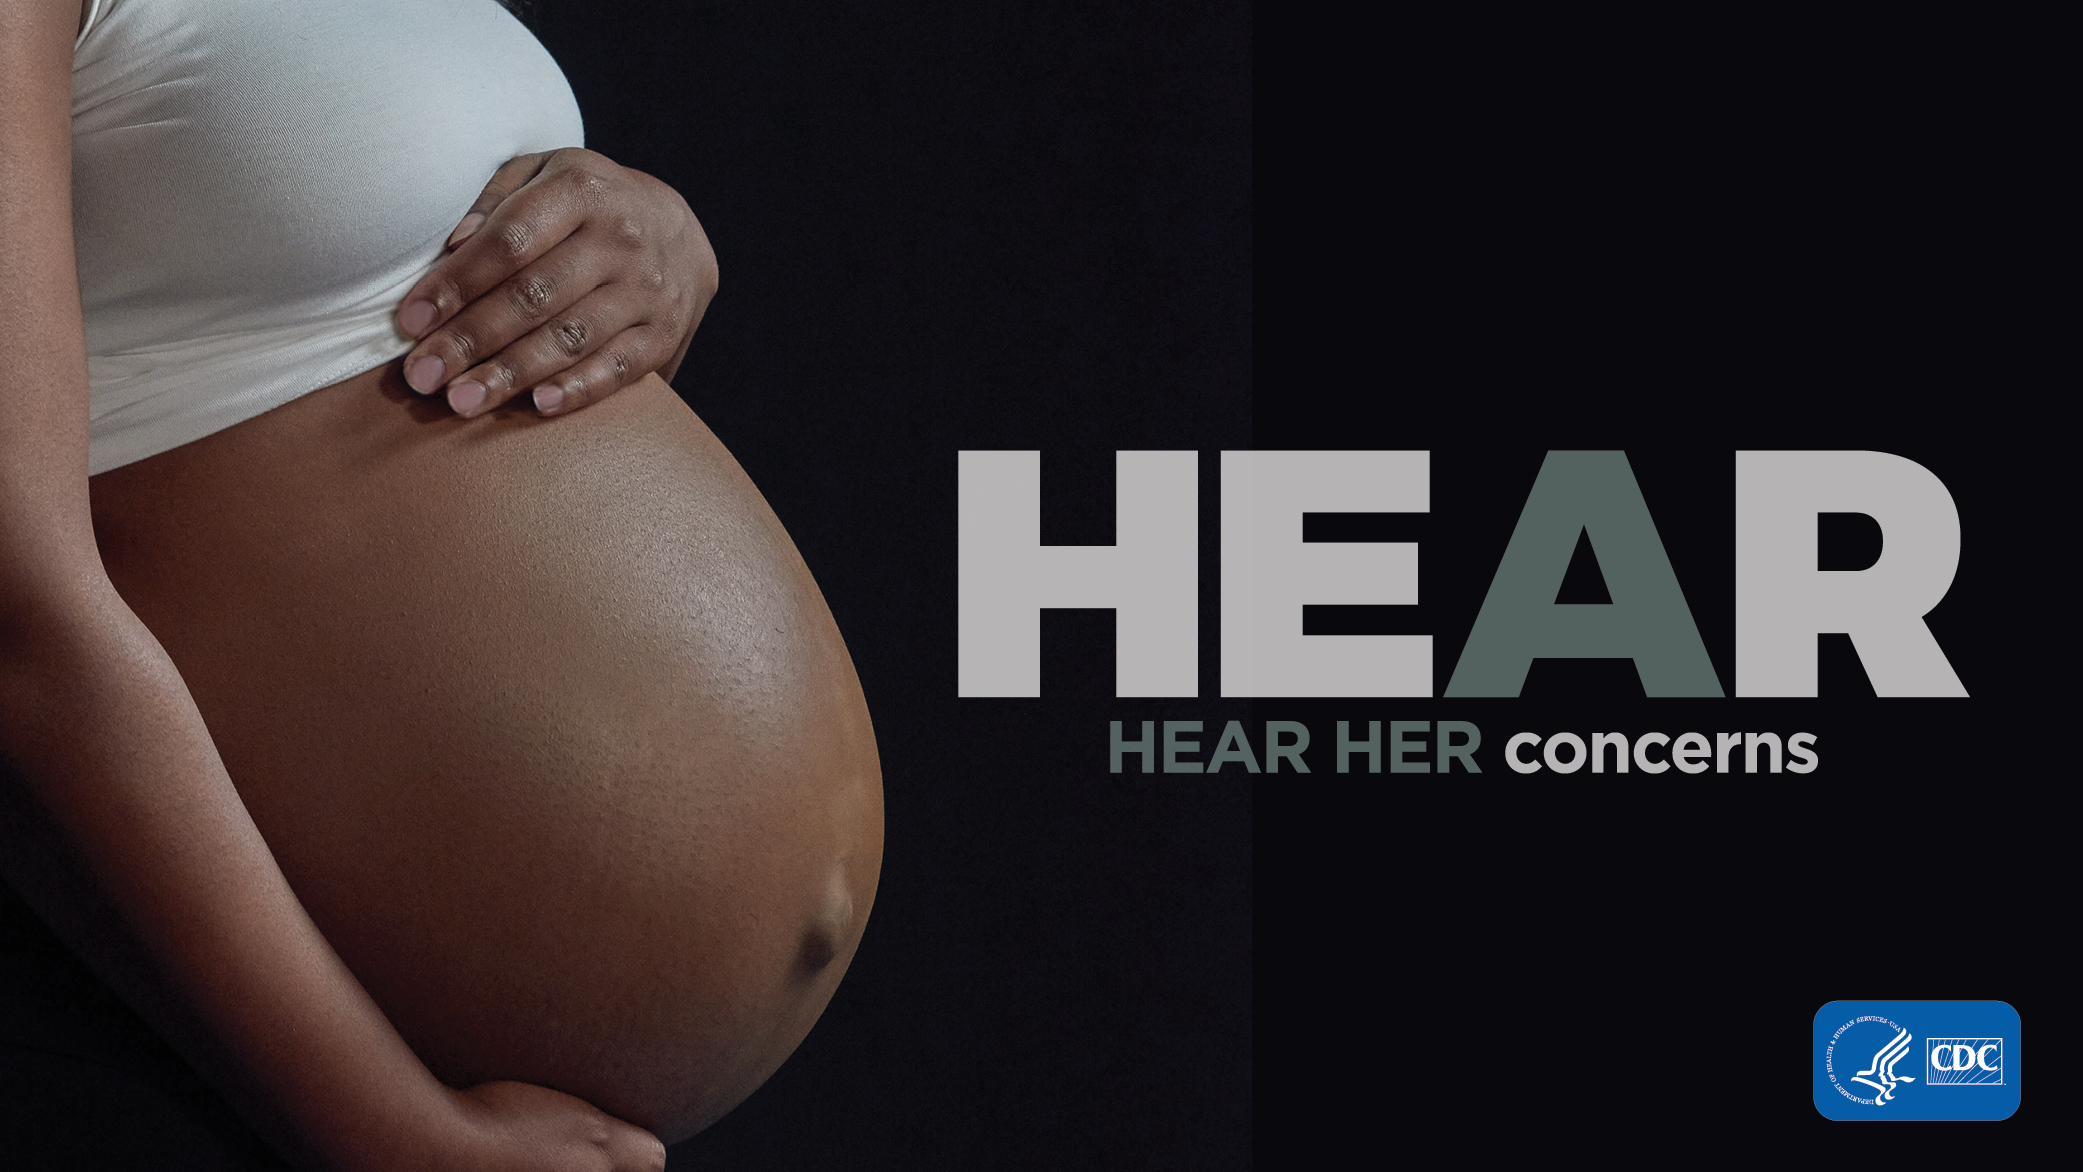 CDC Launches Hear Her Campaign